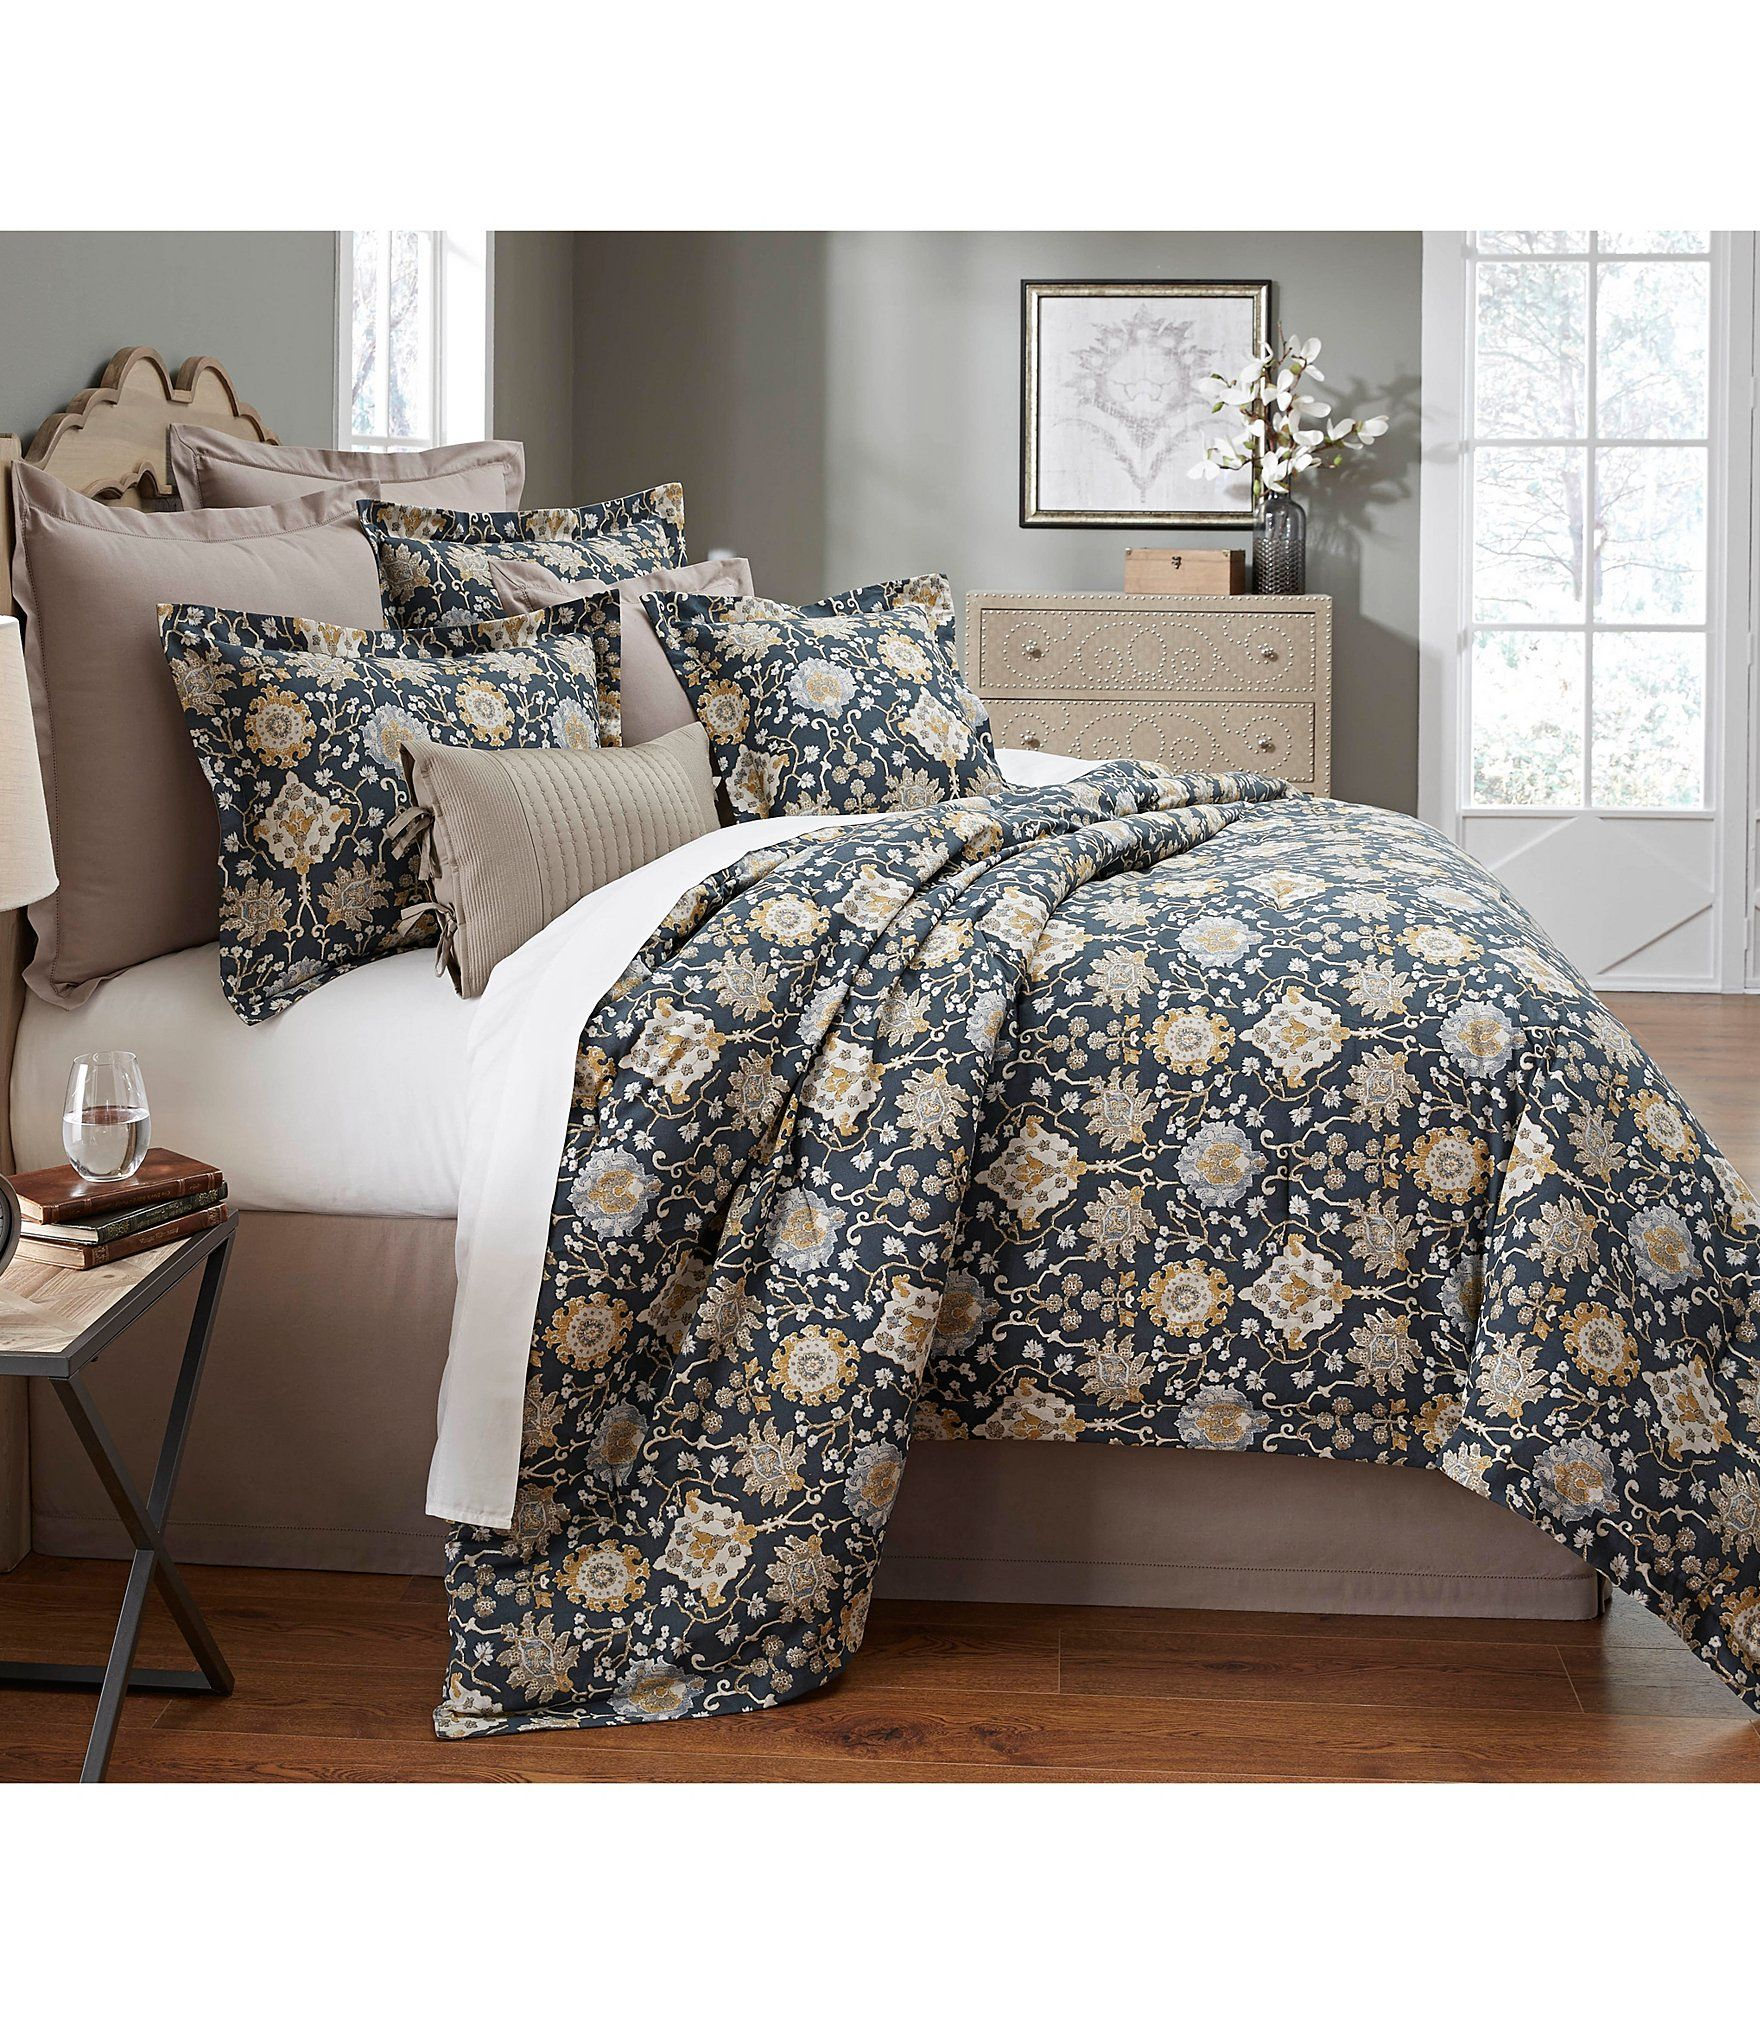 free bedding spice madison park robin today shipping pieces sateen product cotton comforter printed overstock bath set